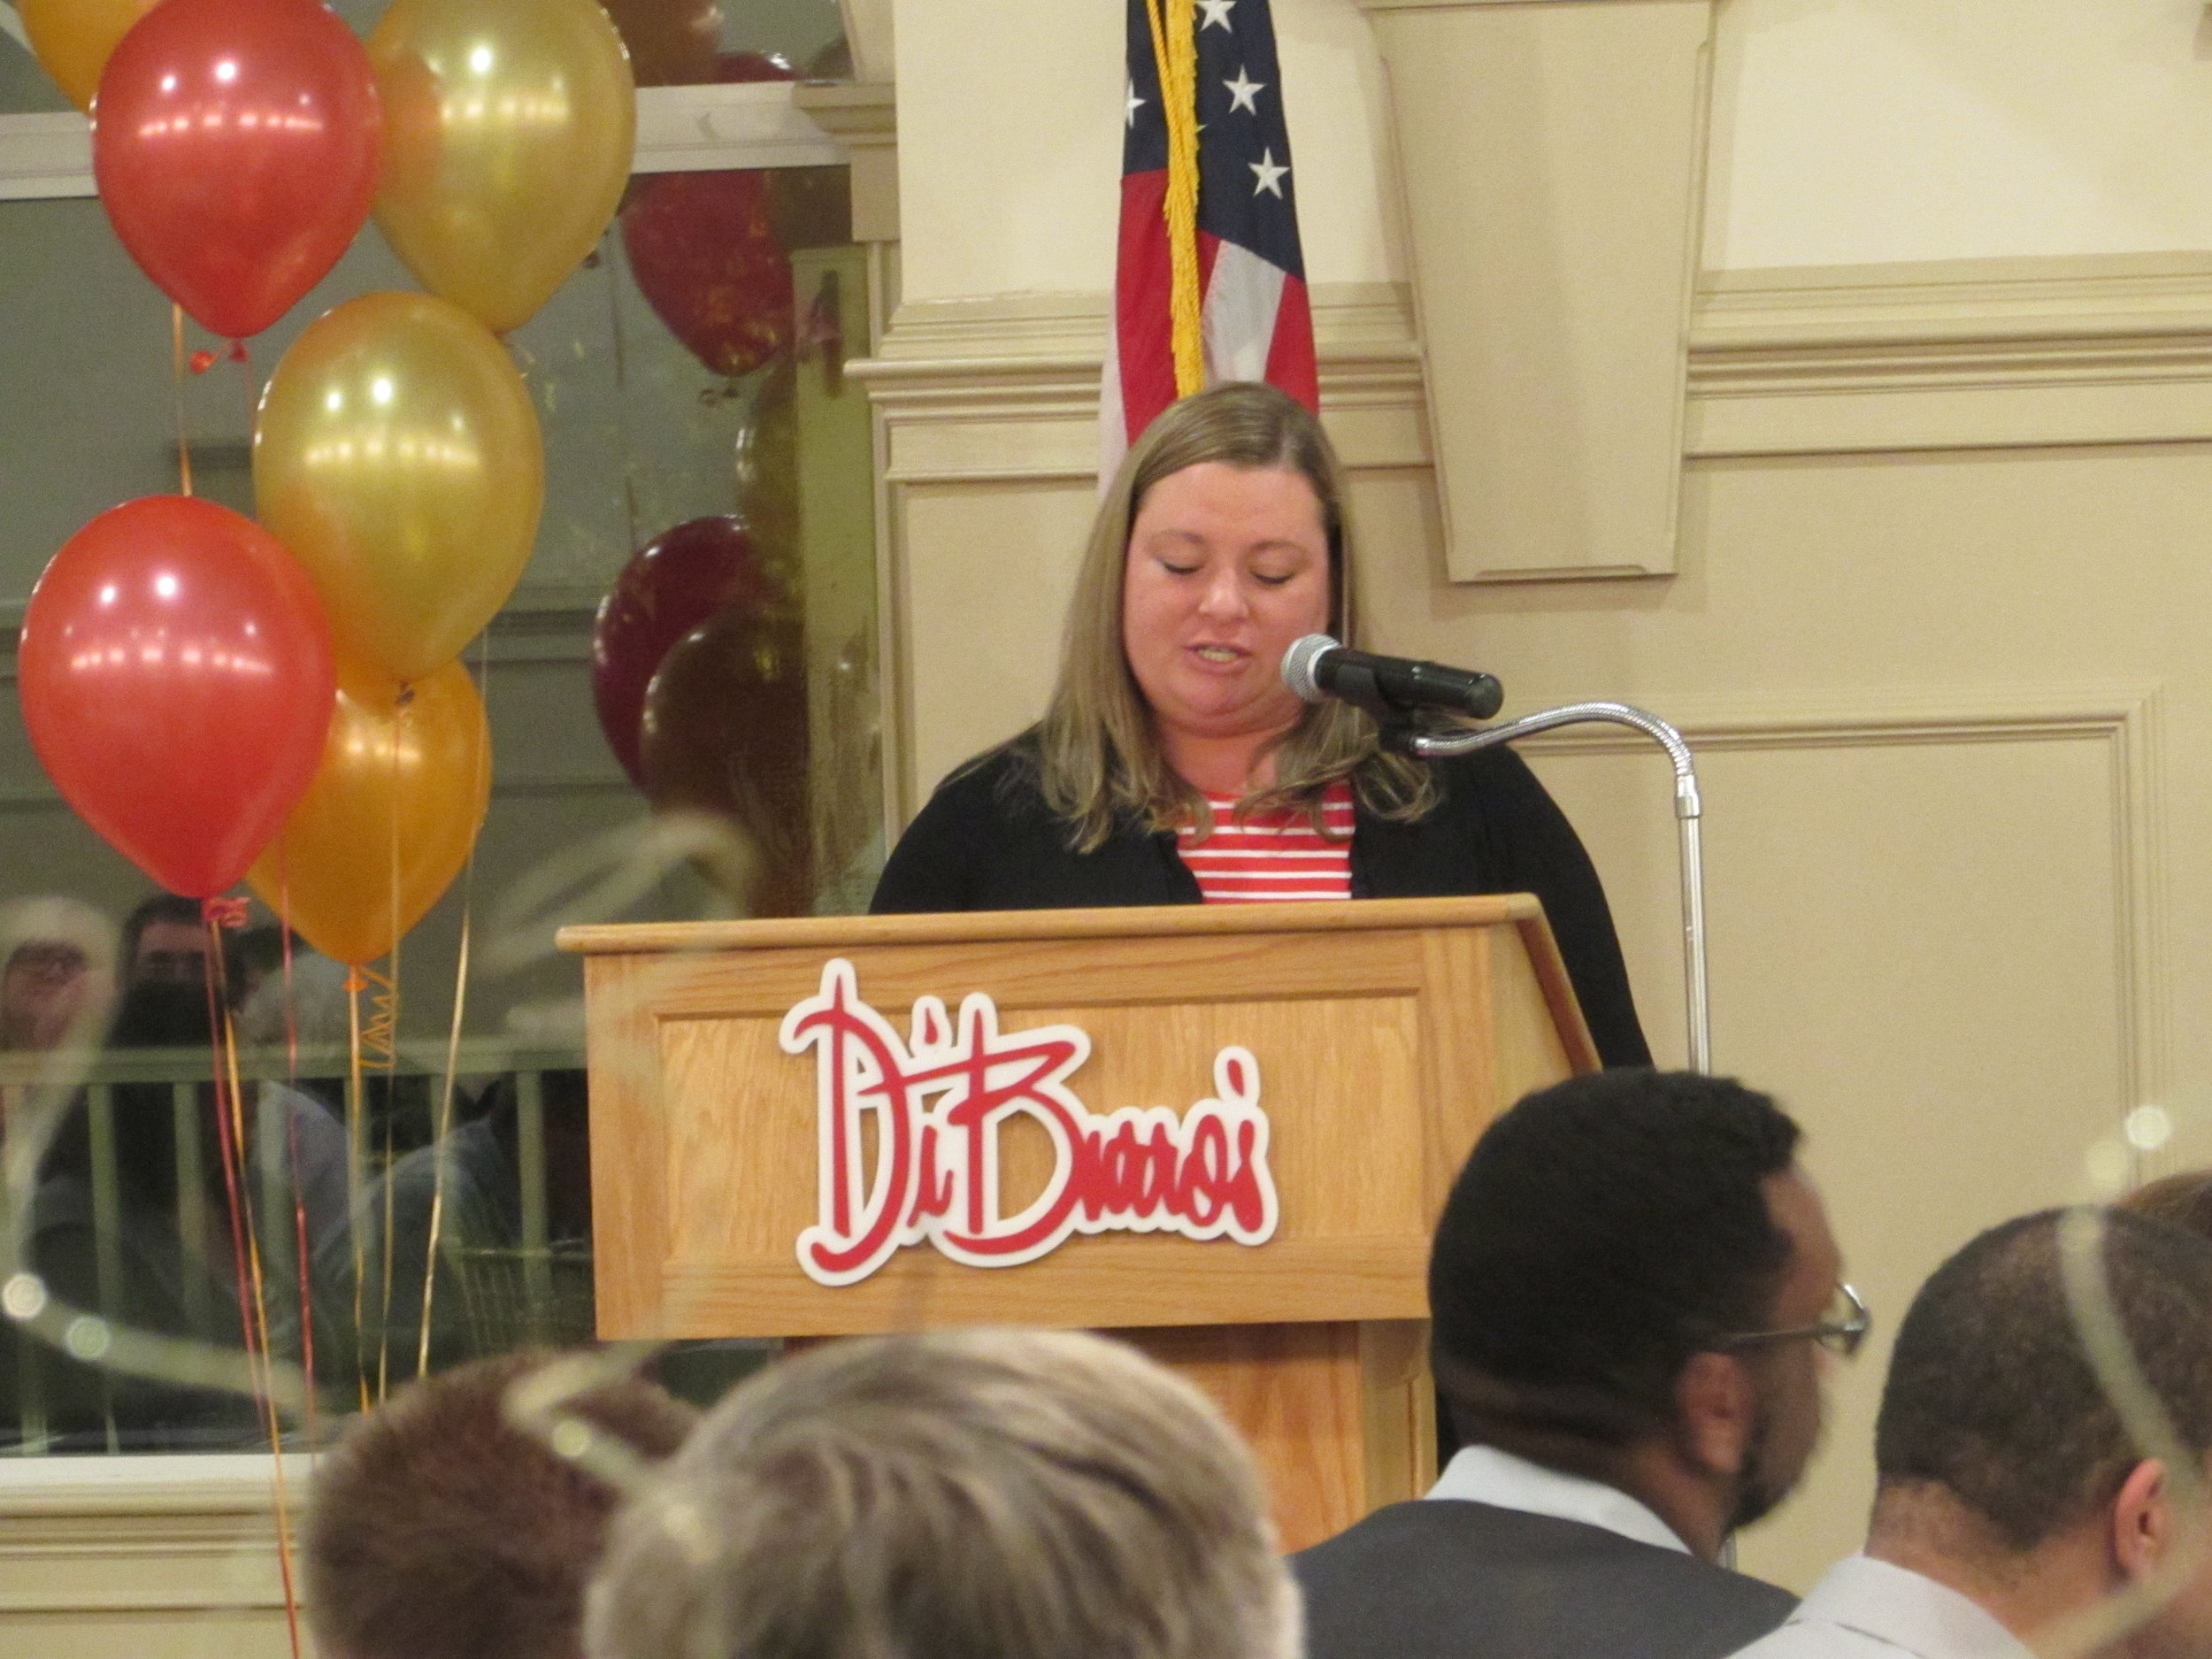 Lindsay Mewa speaking about expeirence with program at annual event.jpg